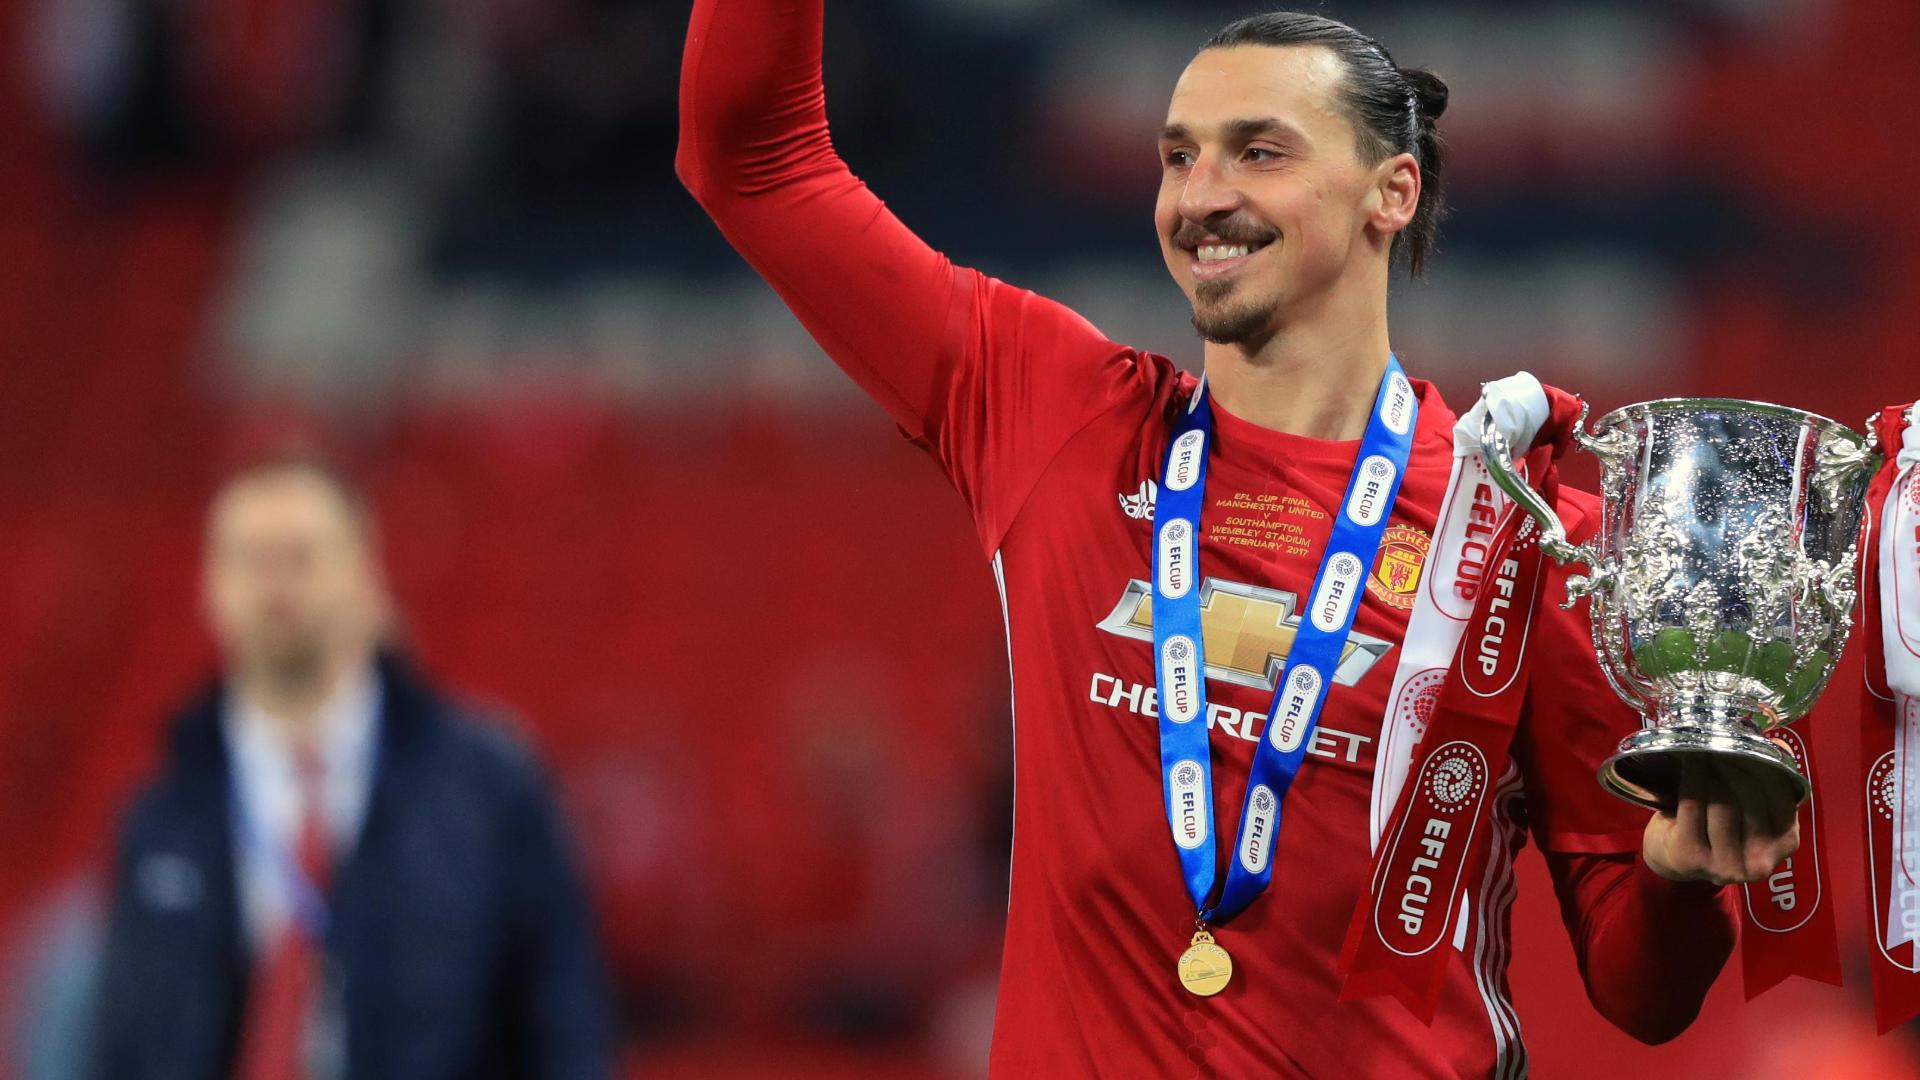 SPORTSManchester United will miss Zlatan Ibrahimovic after LA Galaxy move- Phil Jones	Email